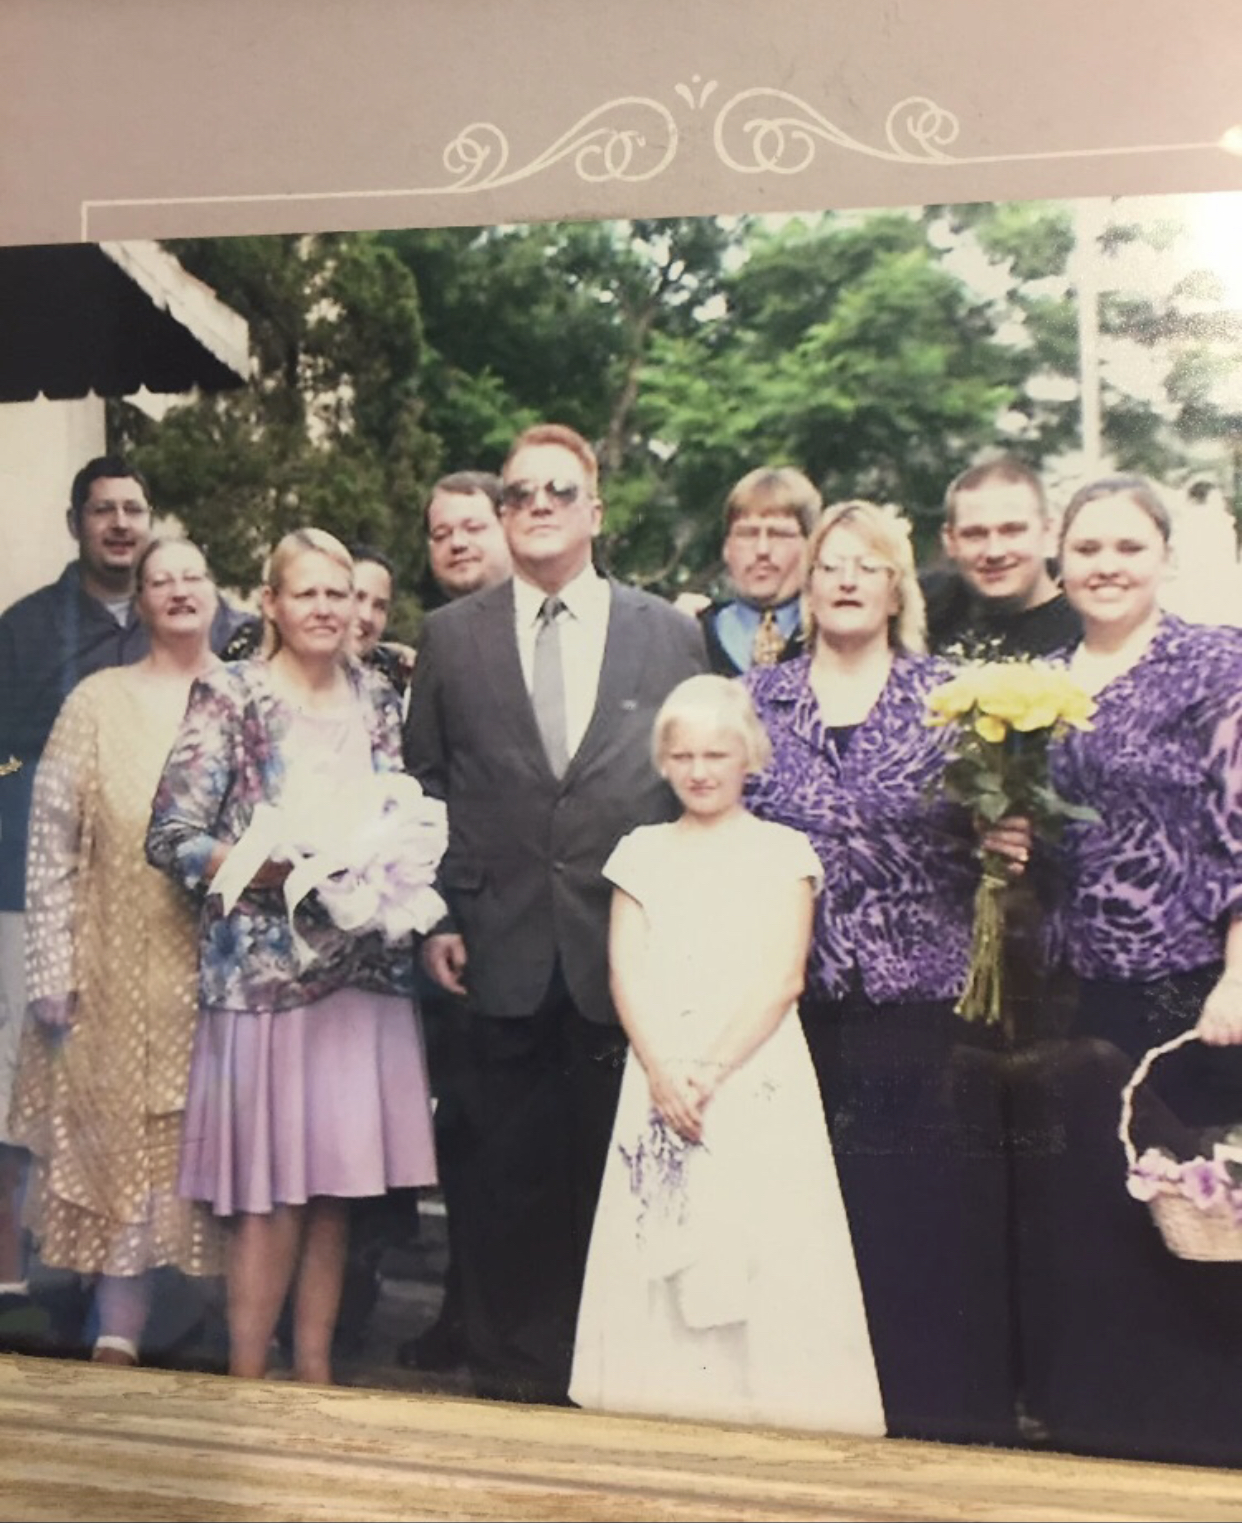 June 18, 2005 the day I married my friend. <br /> ♥️